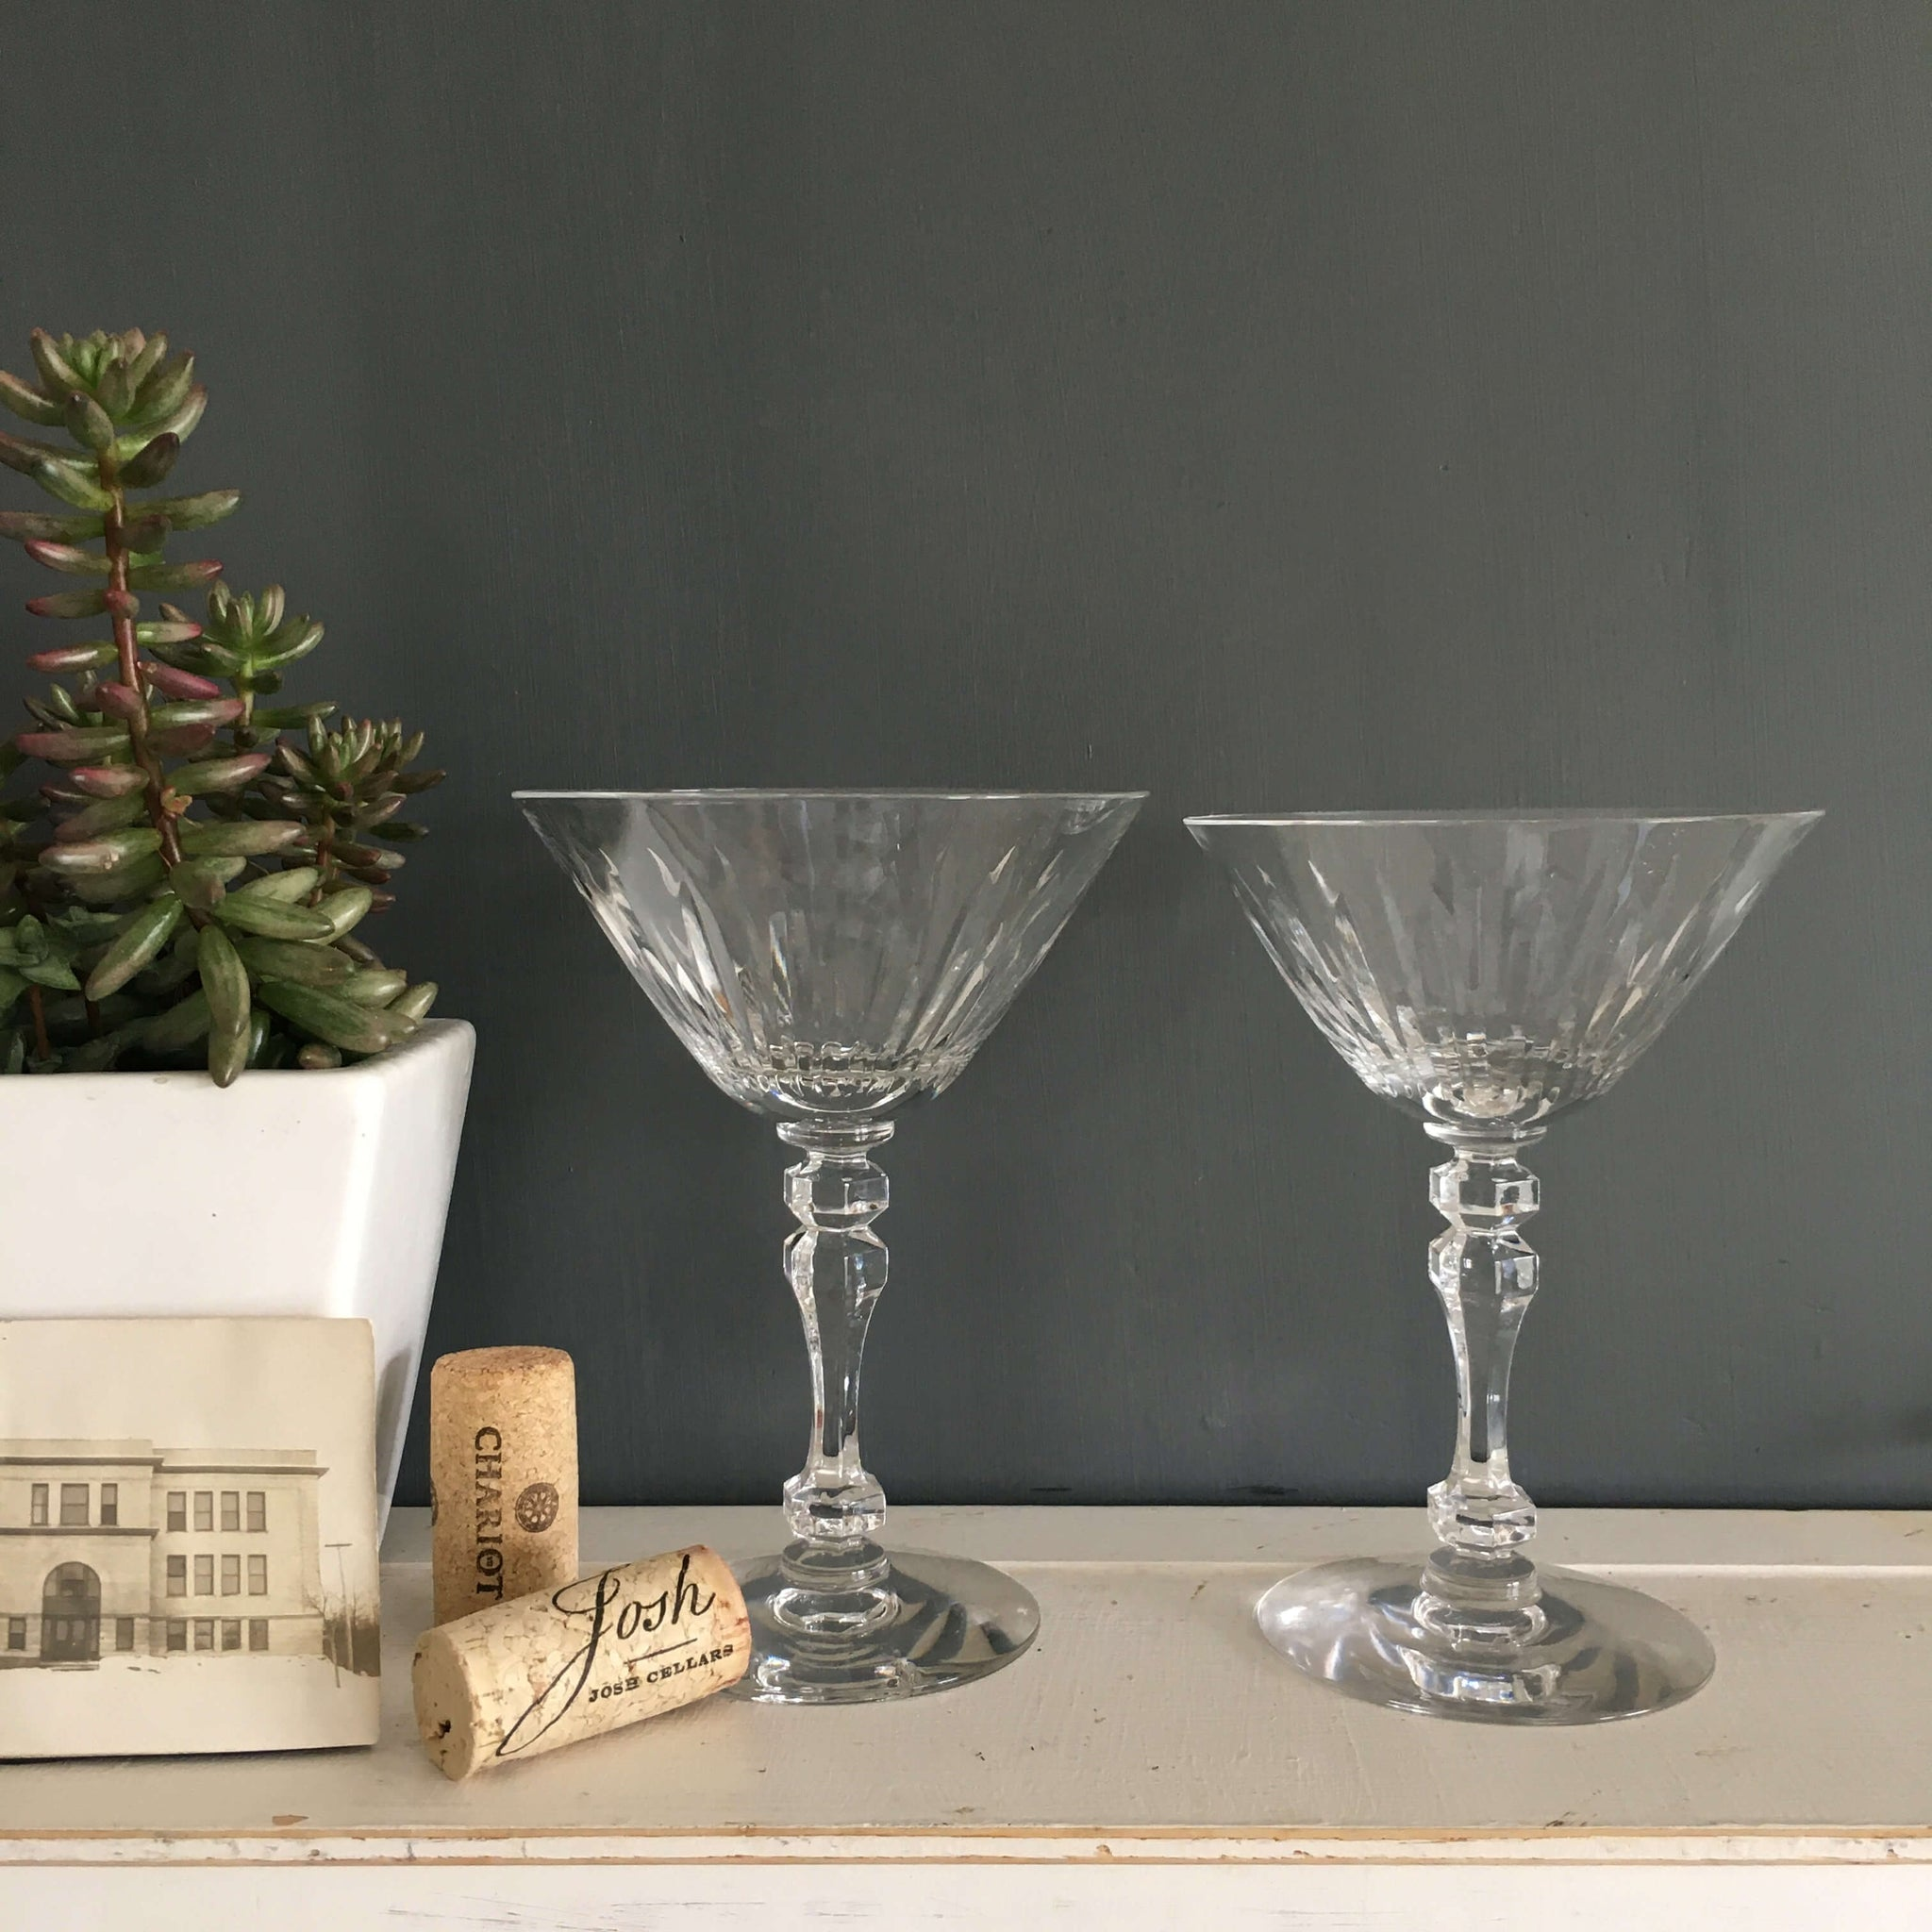 Vintage Cut Glass Stemware - Set of Two - Vintage Glassware Wine Cocktail Barware